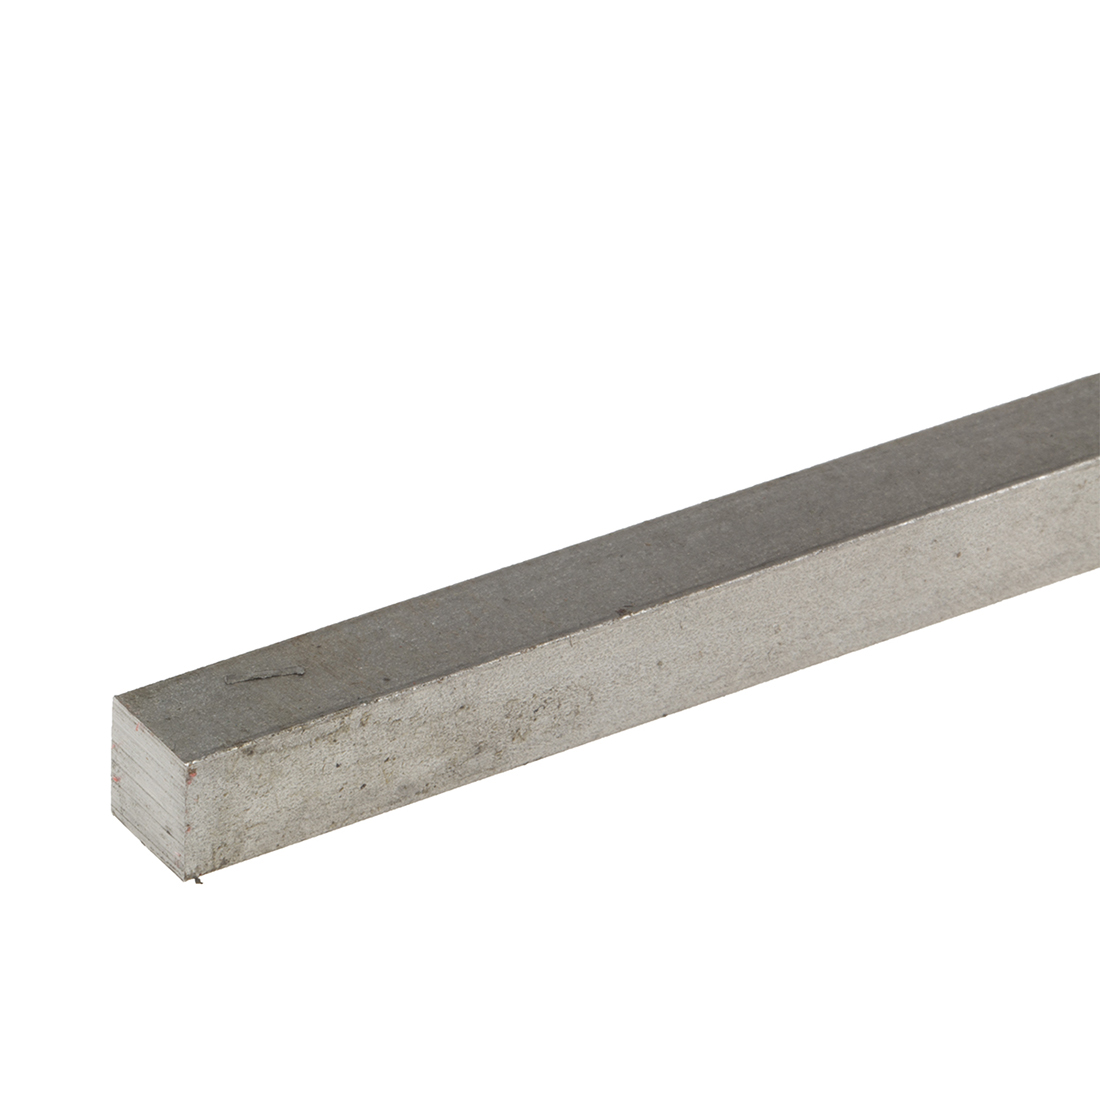 304mm x 8mm 316 Stainless Steel Square Bar